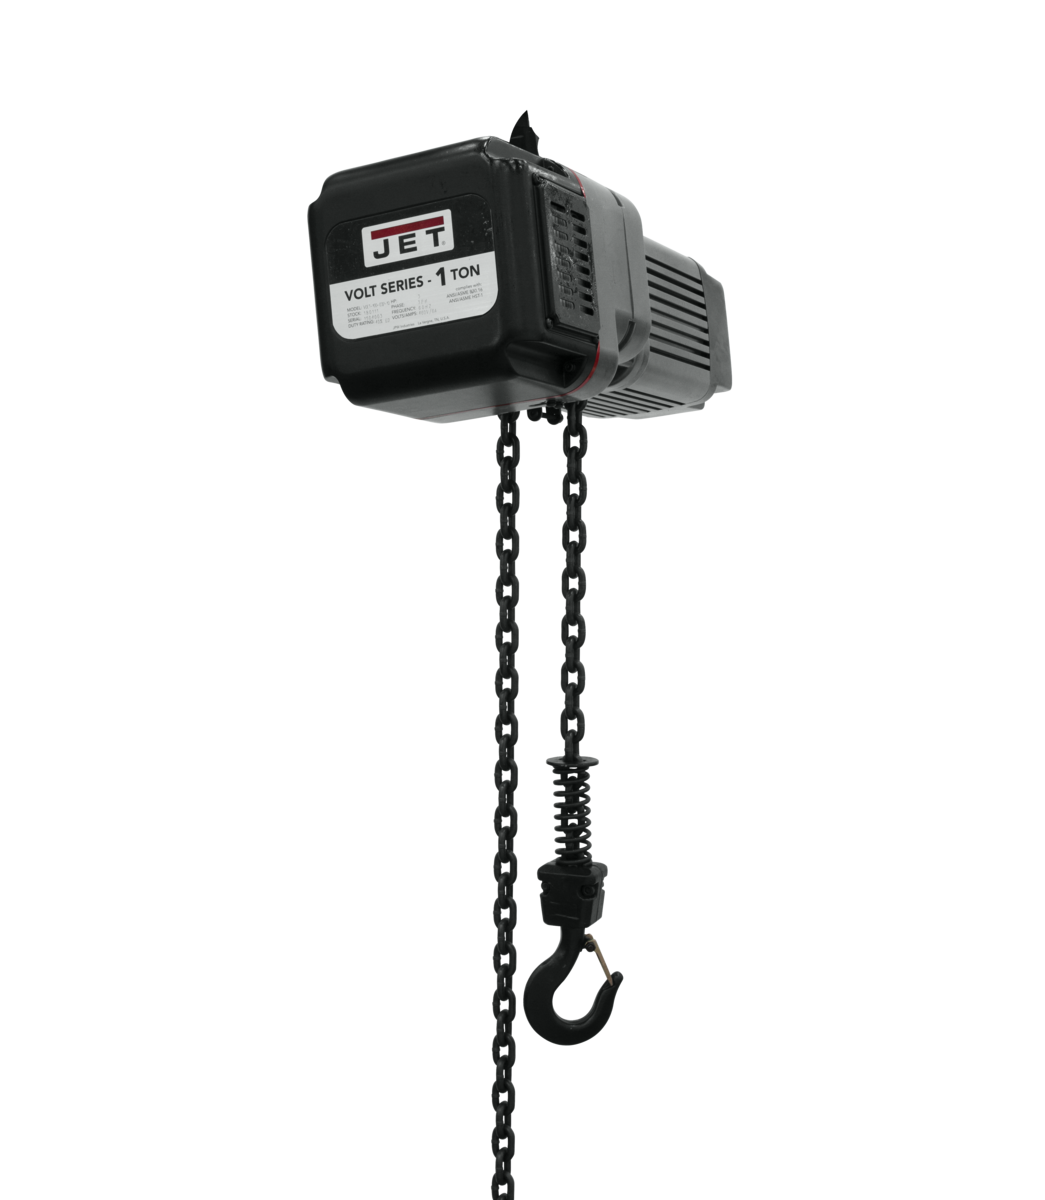 VOLT 1T VARIABLE-SPEED ELECTRIC HOIST 1PH/3PH 230V 10' LIFT